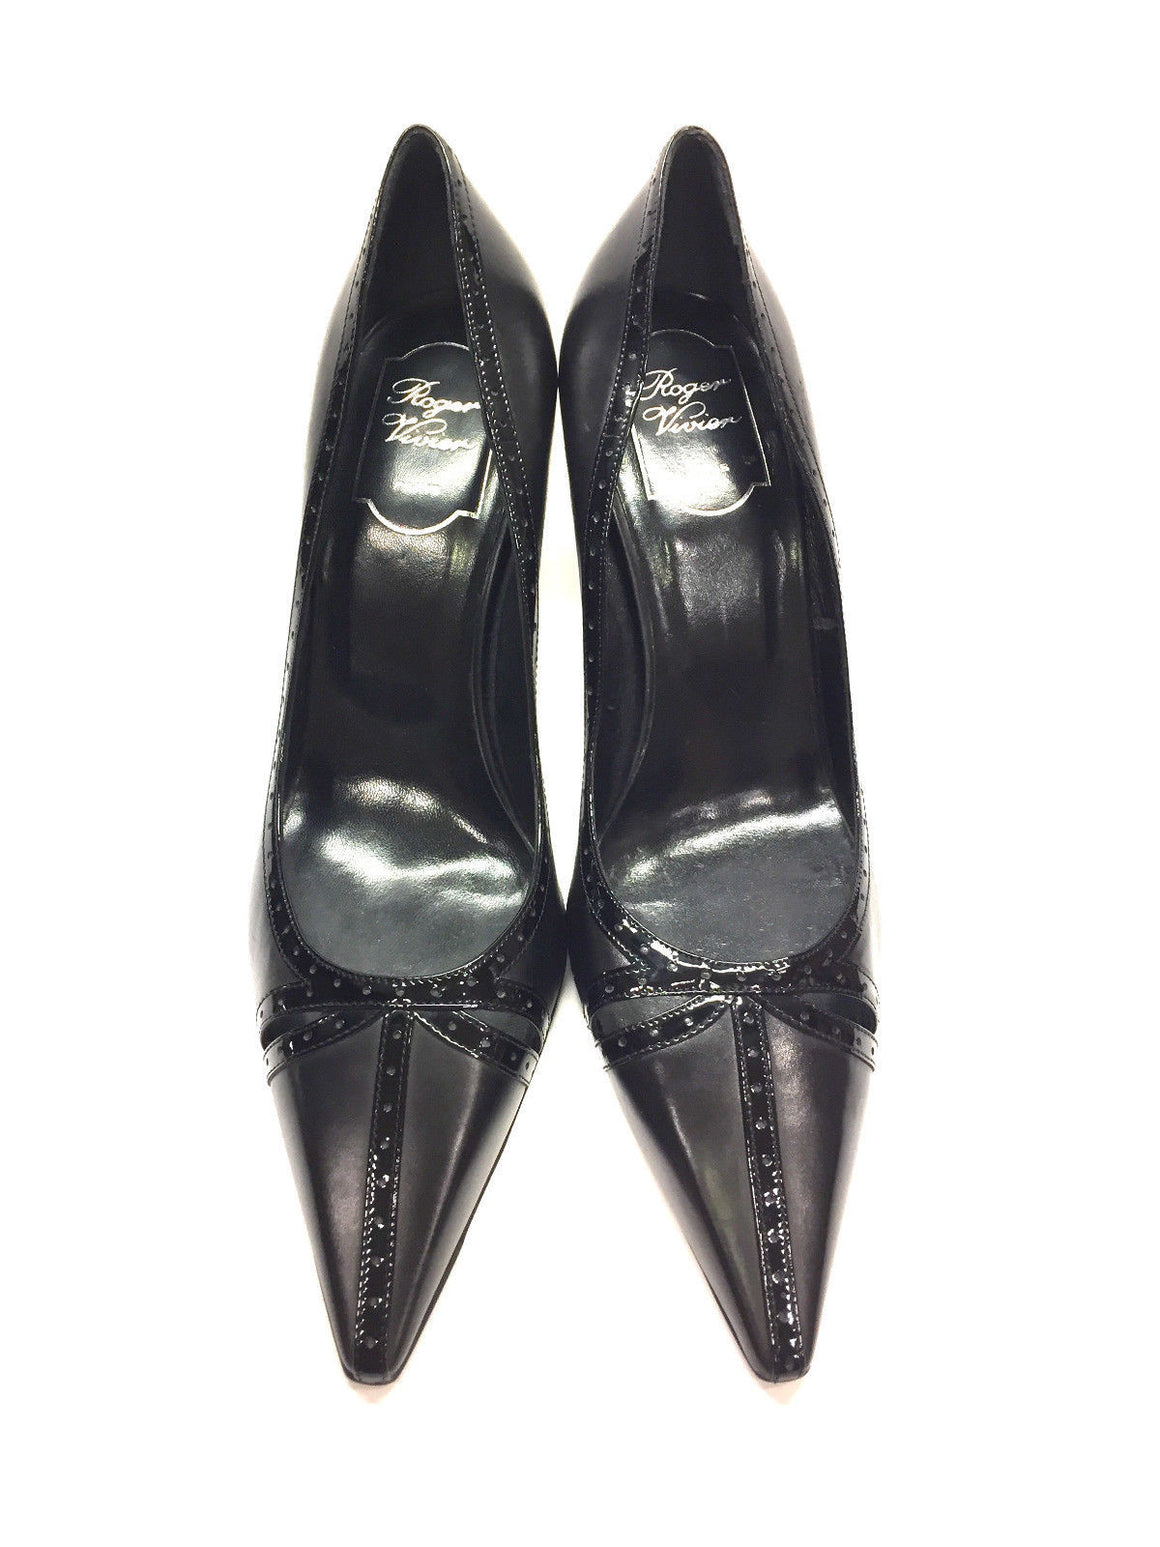 bisbiz.com ROGER VIVIER   Black Leather Perforated Patent Leather Trim  Pointed Top Heel Pumps Shoes  Size: 39.5/9.5 - Bis Luxury Resale